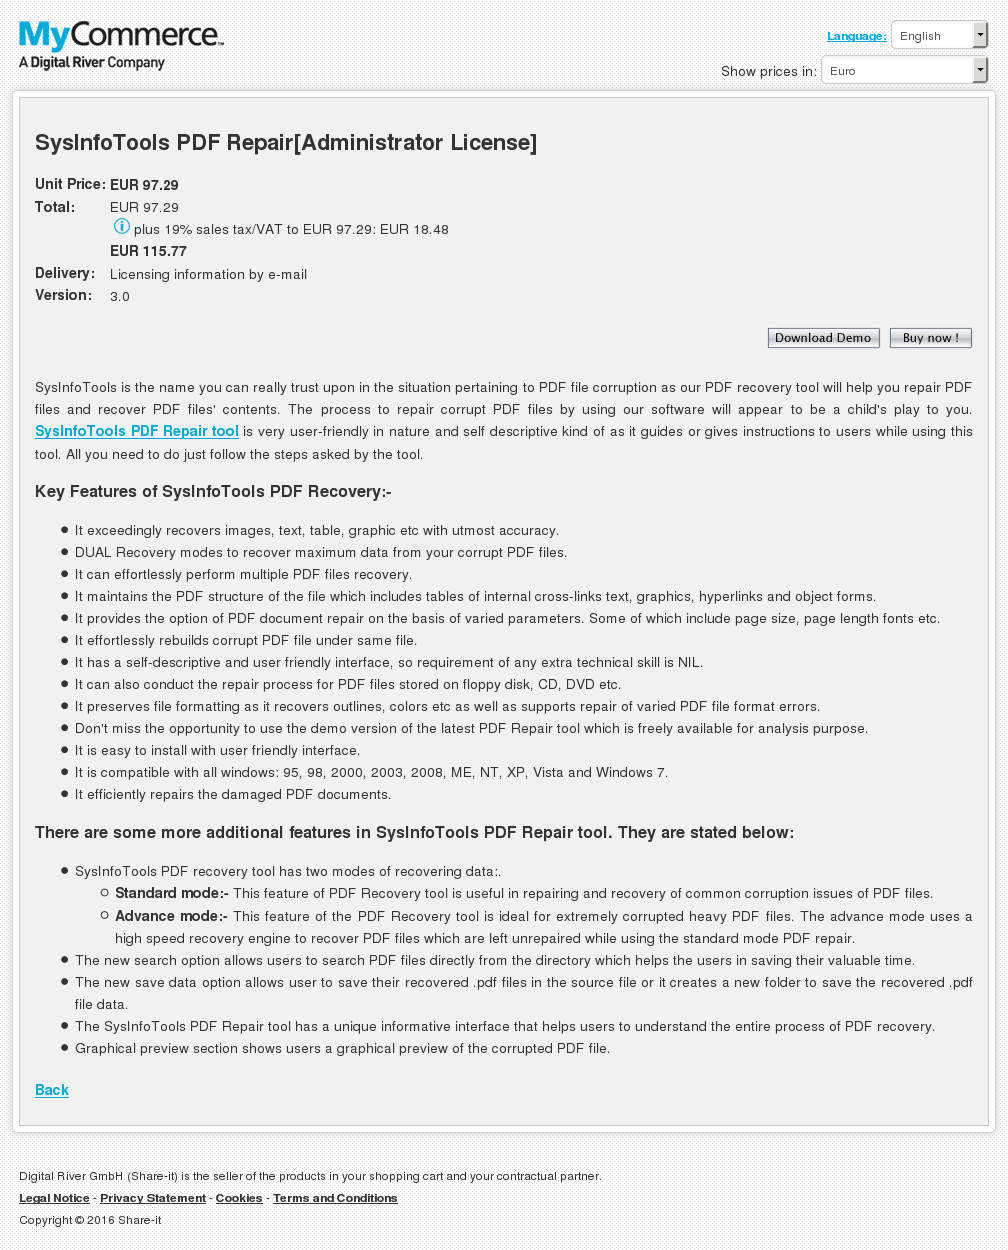 Sysinfotools Pdf Repair Administrator License Features